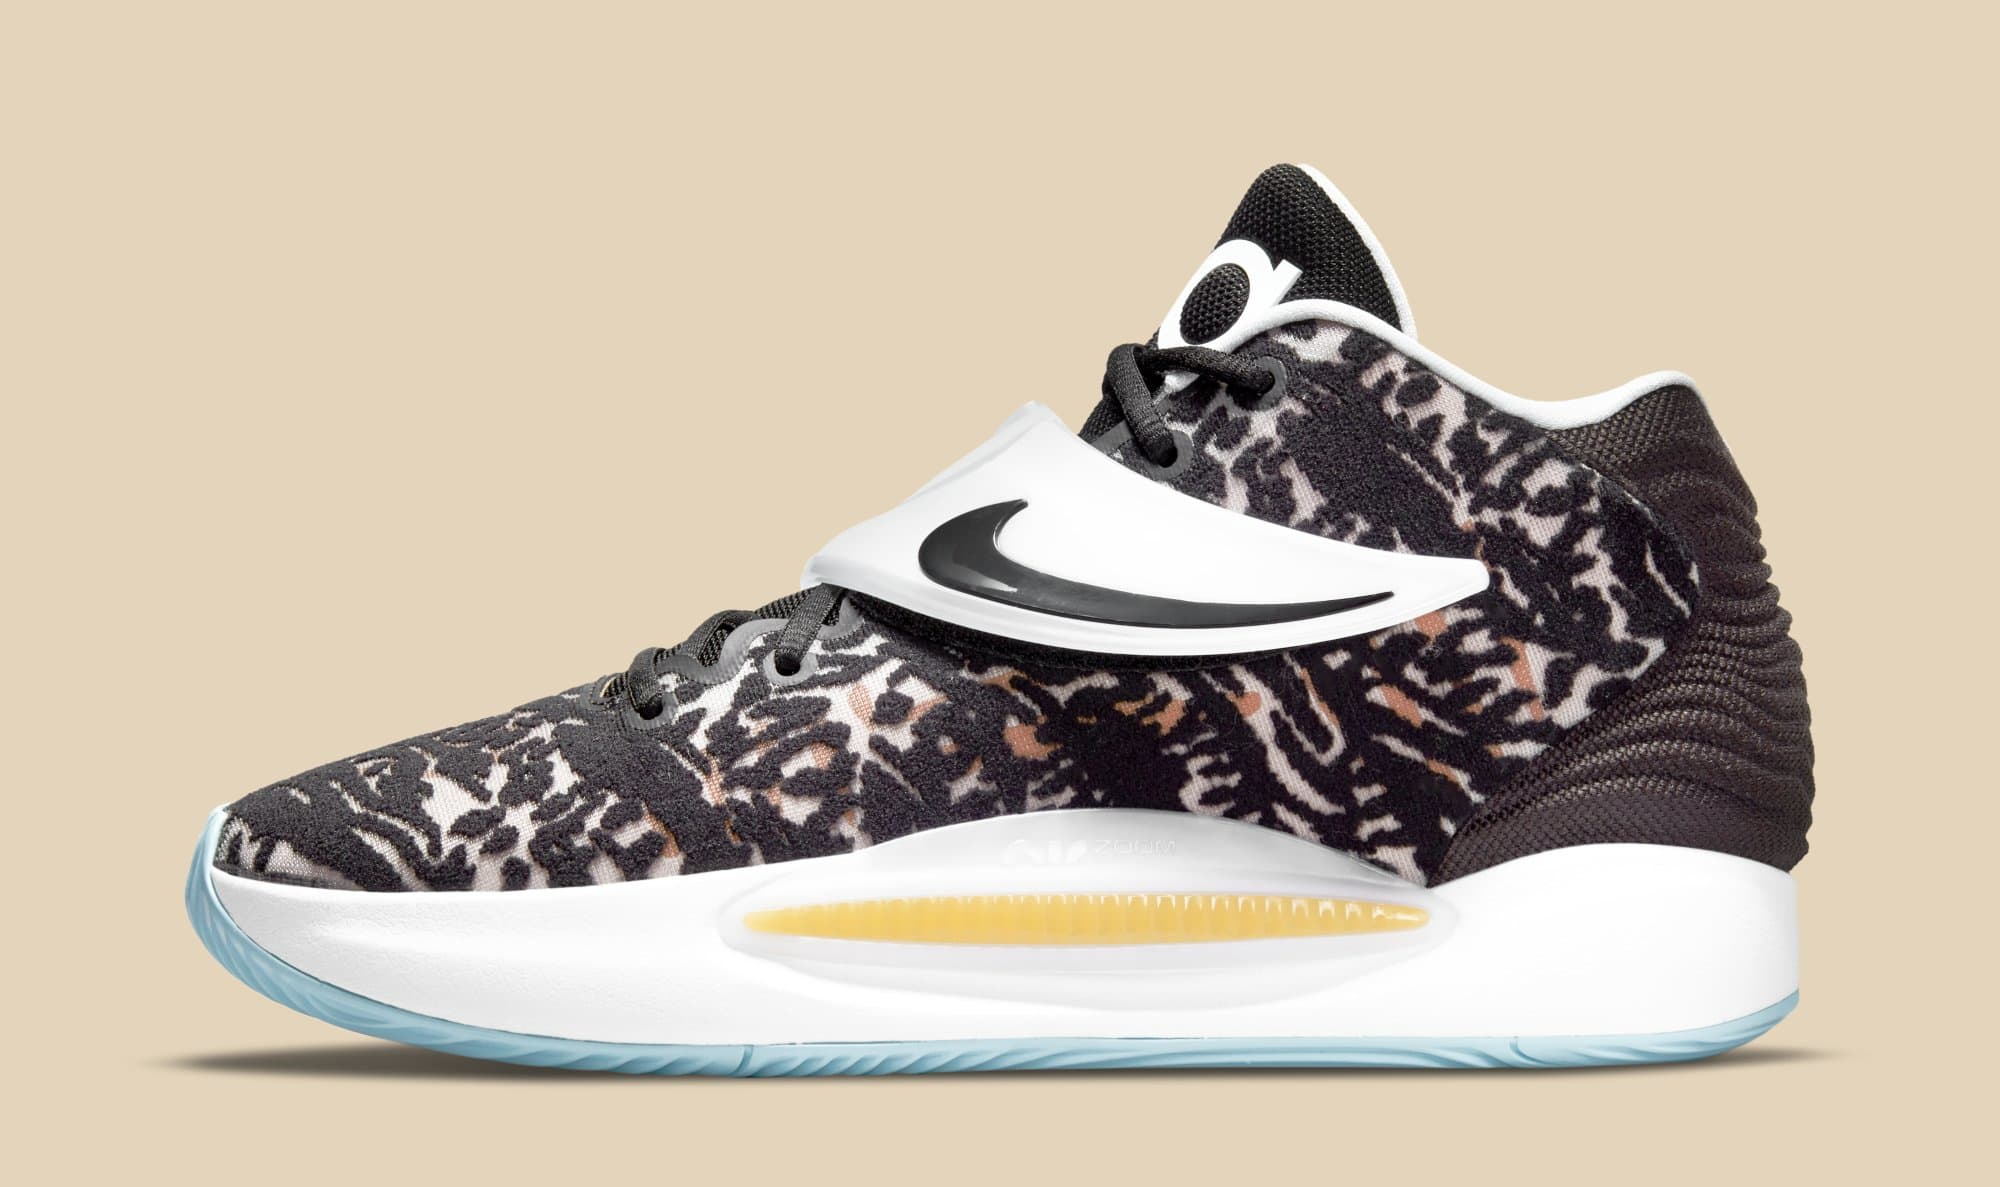 Nike KD 14 CW3935-001 (Lateral)